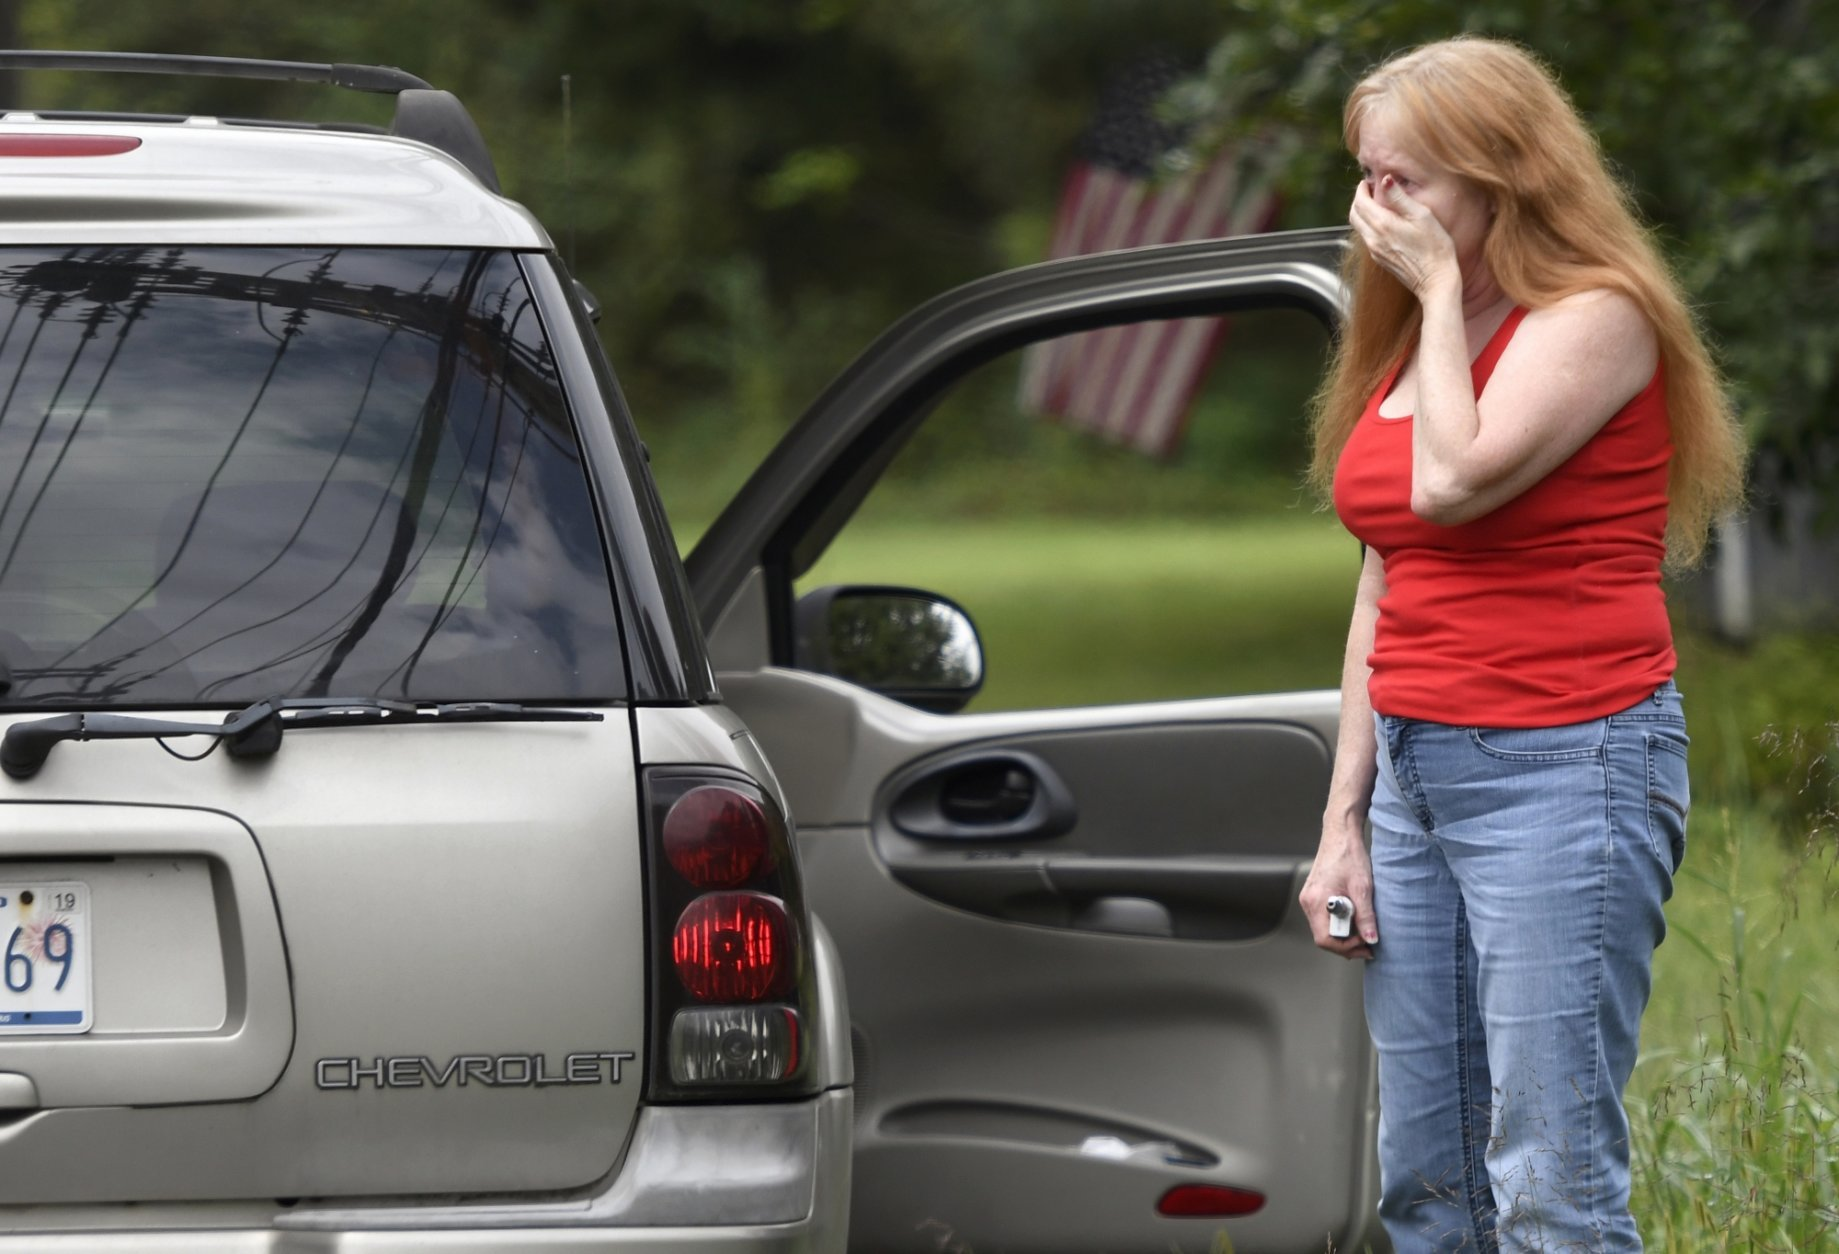 """Shirley Pollack, of Perryville, Md. reacts to what authorities have called a shooting with multiple victims in Perryman, Md. on Thursday, Sept. 20, 2018. Authorities say multiple people have been shot in northeast Maryland in what the FBI is describing as an """"active shooter situation.""""   Pollack,was concerned about her son  who worked near the scene of the shooting.  (AP Photo/Steve Ruark)"""